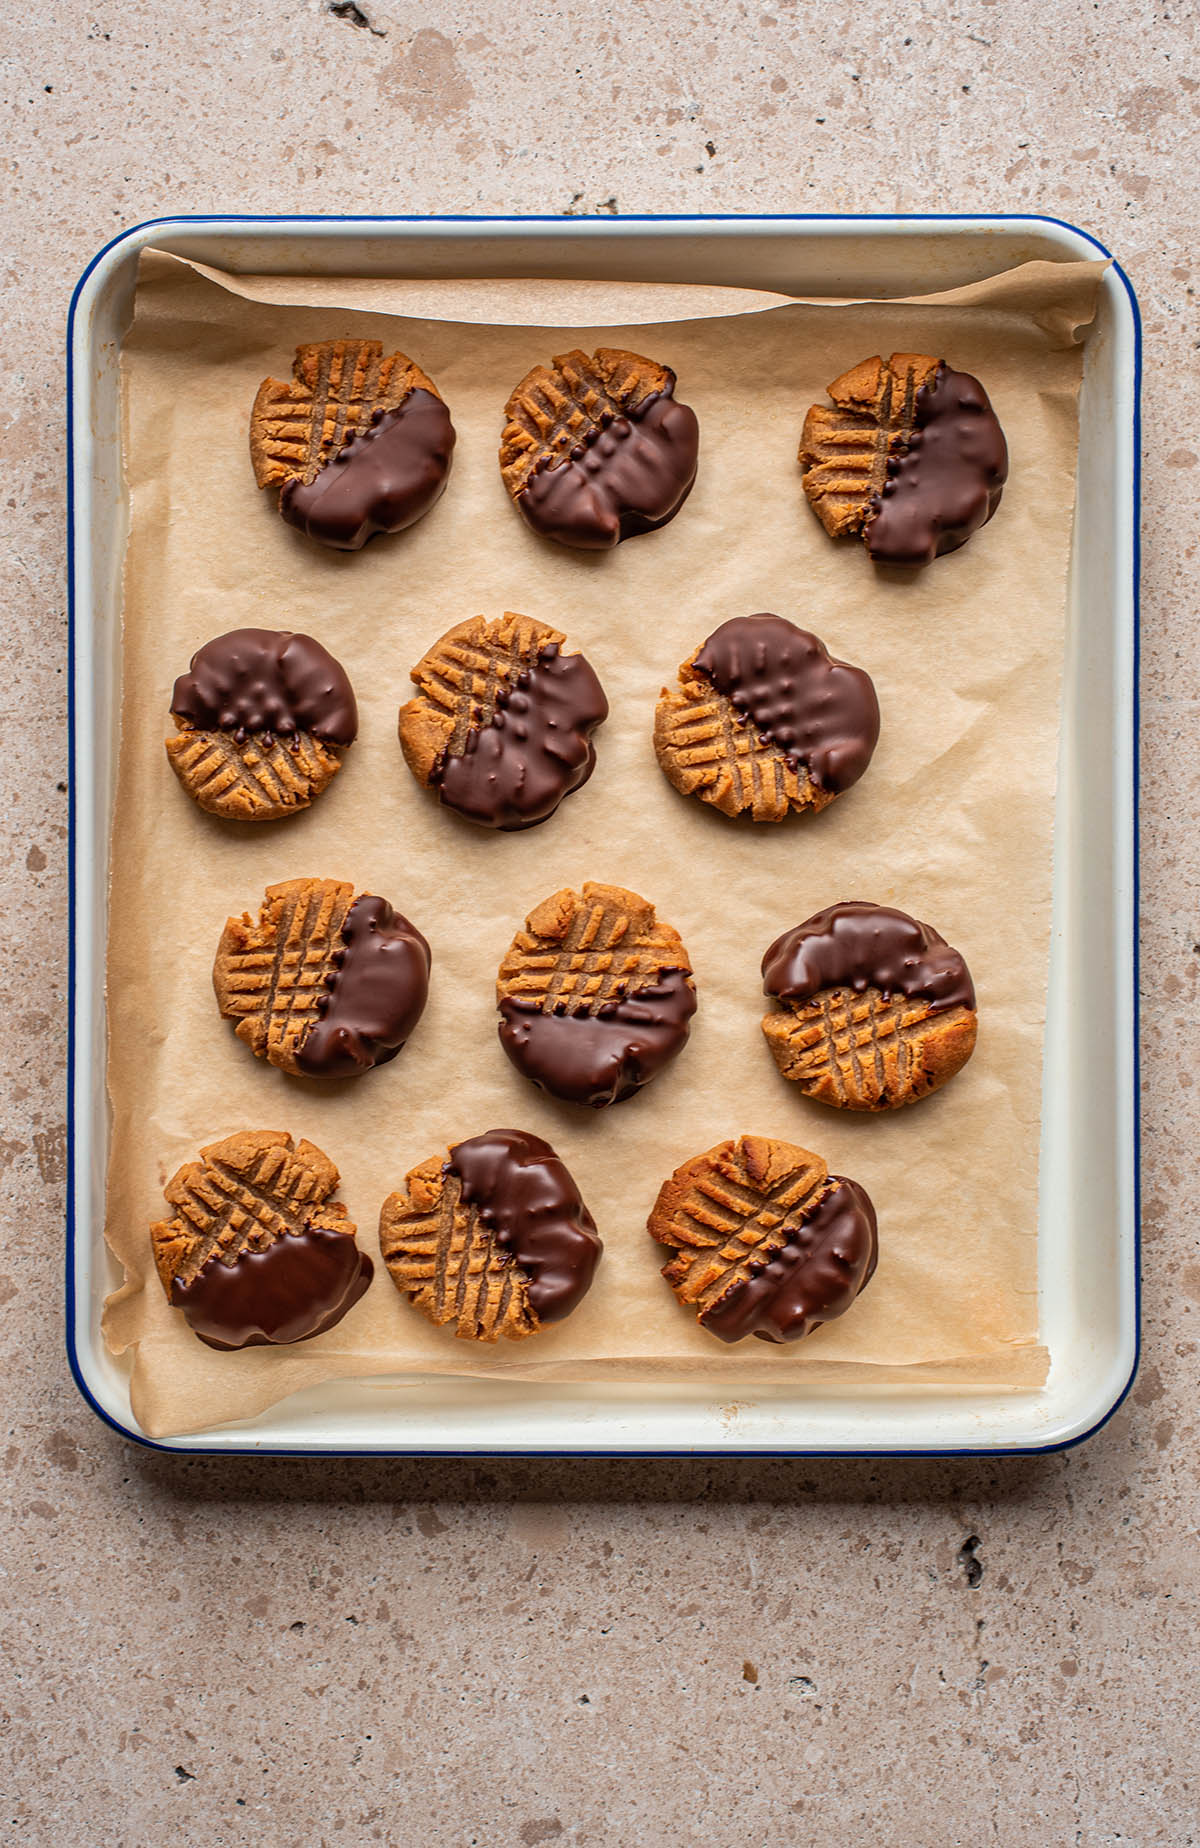 Chocolate dipped peanut butter cookies on a tray, top down view.